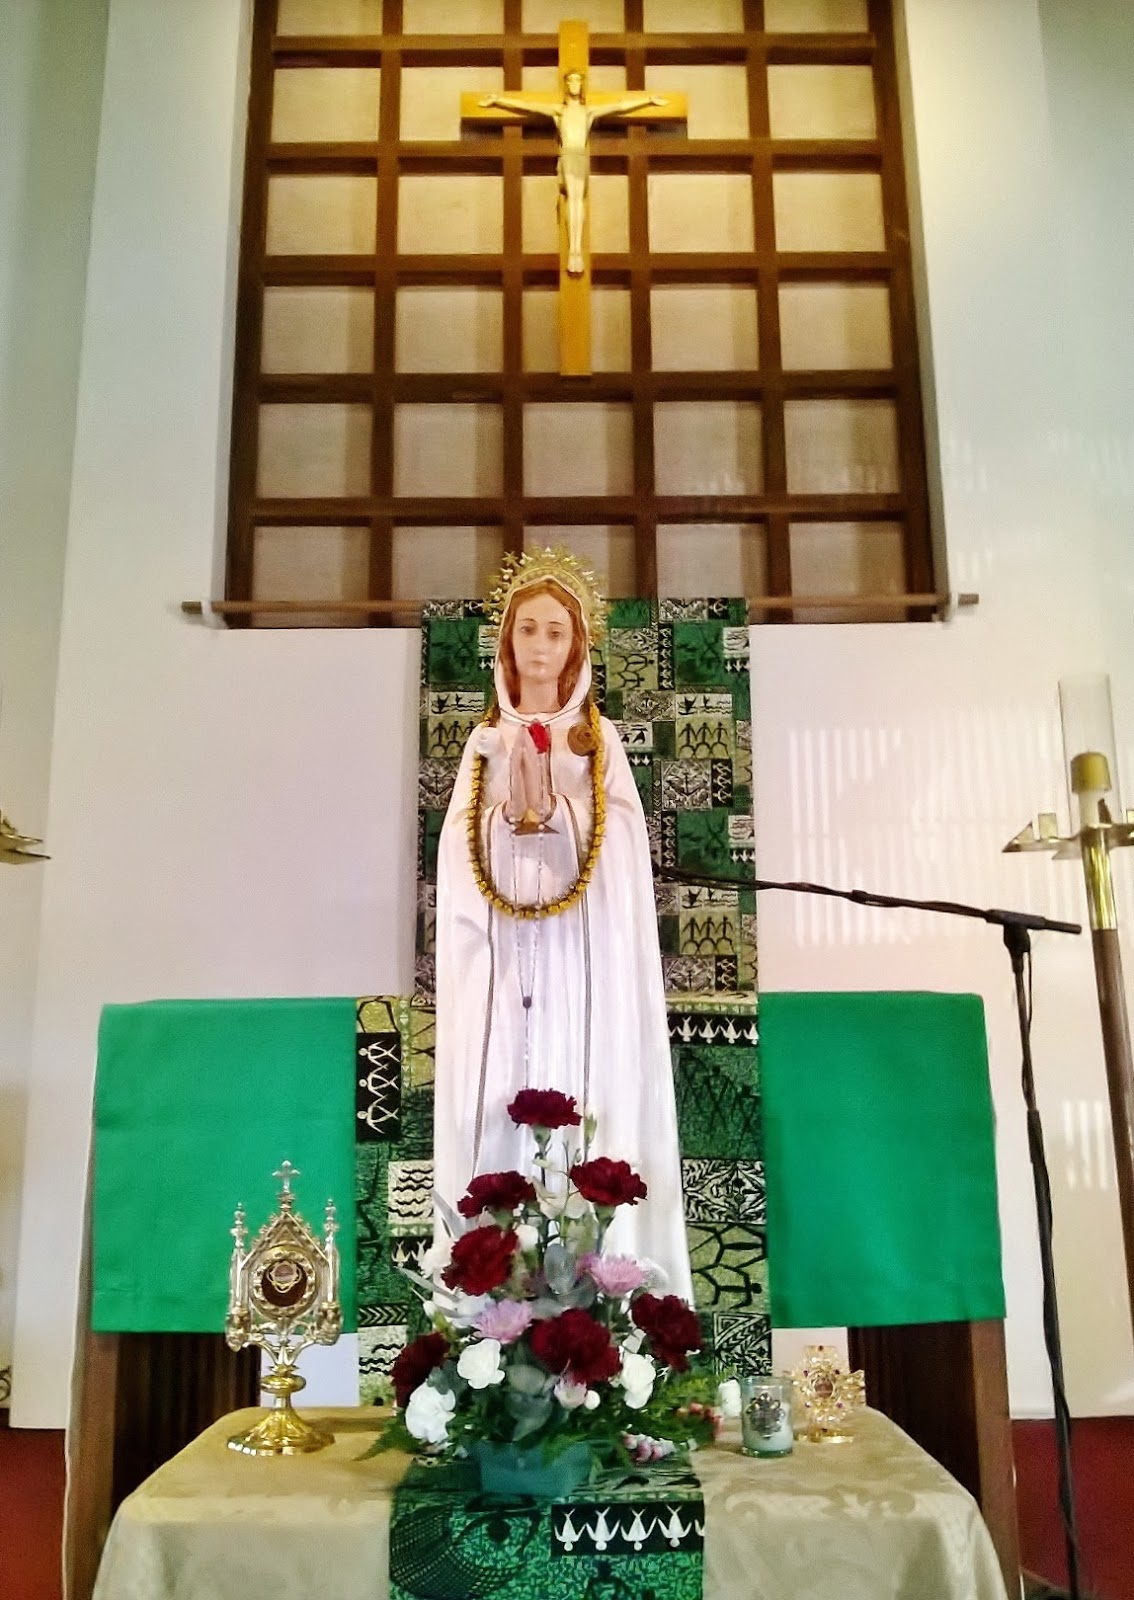 My pilgrim statue on display in the day chapel of st anthony of padua church kailua